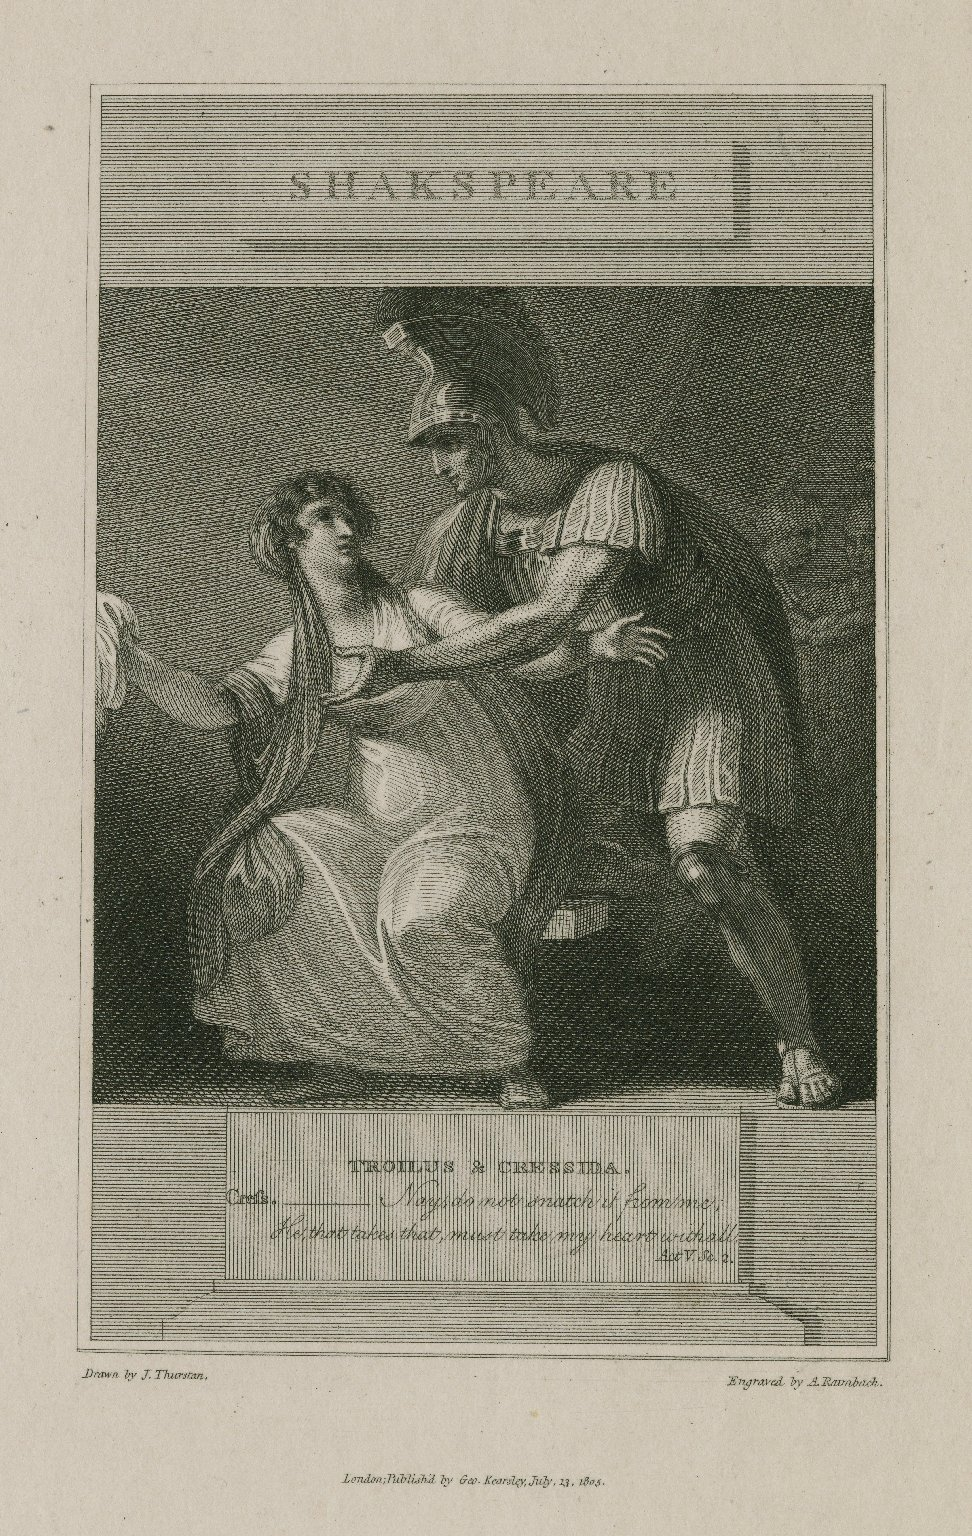 Troilus & Cressida, Cress.-- Nay, do not snatch it from me, He that takes that must take my heart withall, act 5, sc. 2 [graphic] / drawn by J. Thurston ; engraved by A. Raimbach.